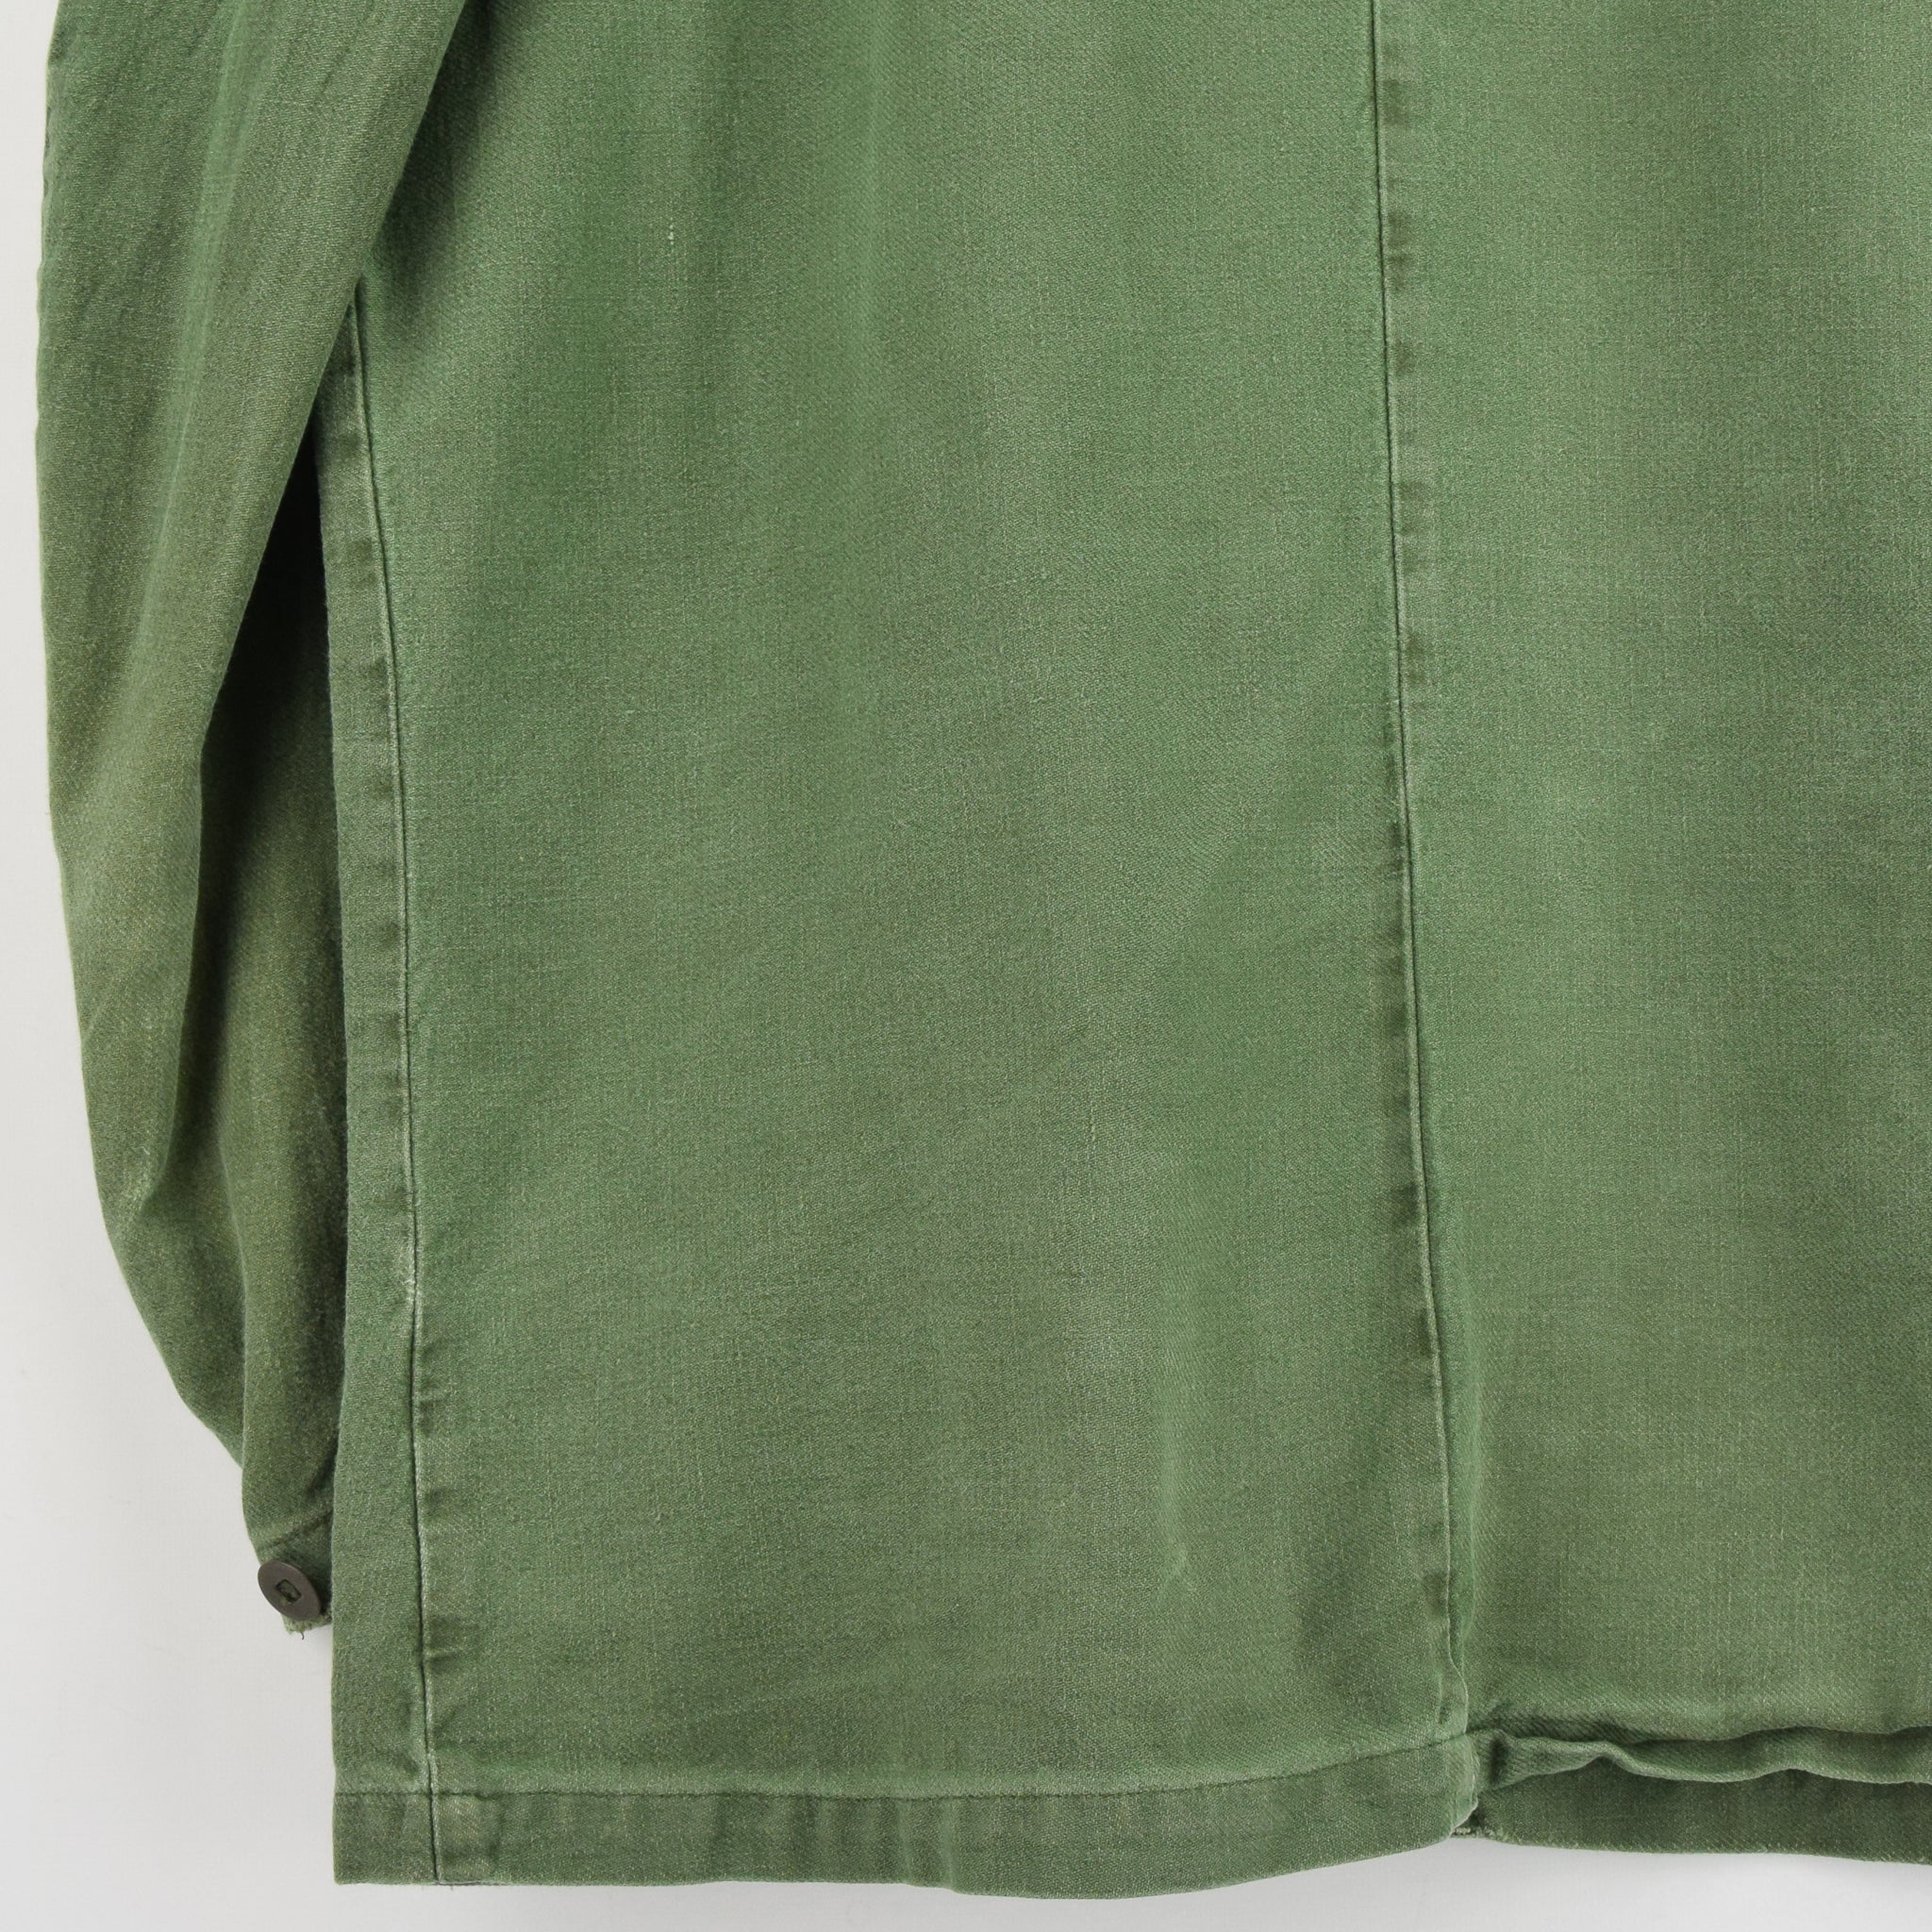 Vintage Swedish Worker Style Distressed Green Military Cotton Field Jacket M / L back hem